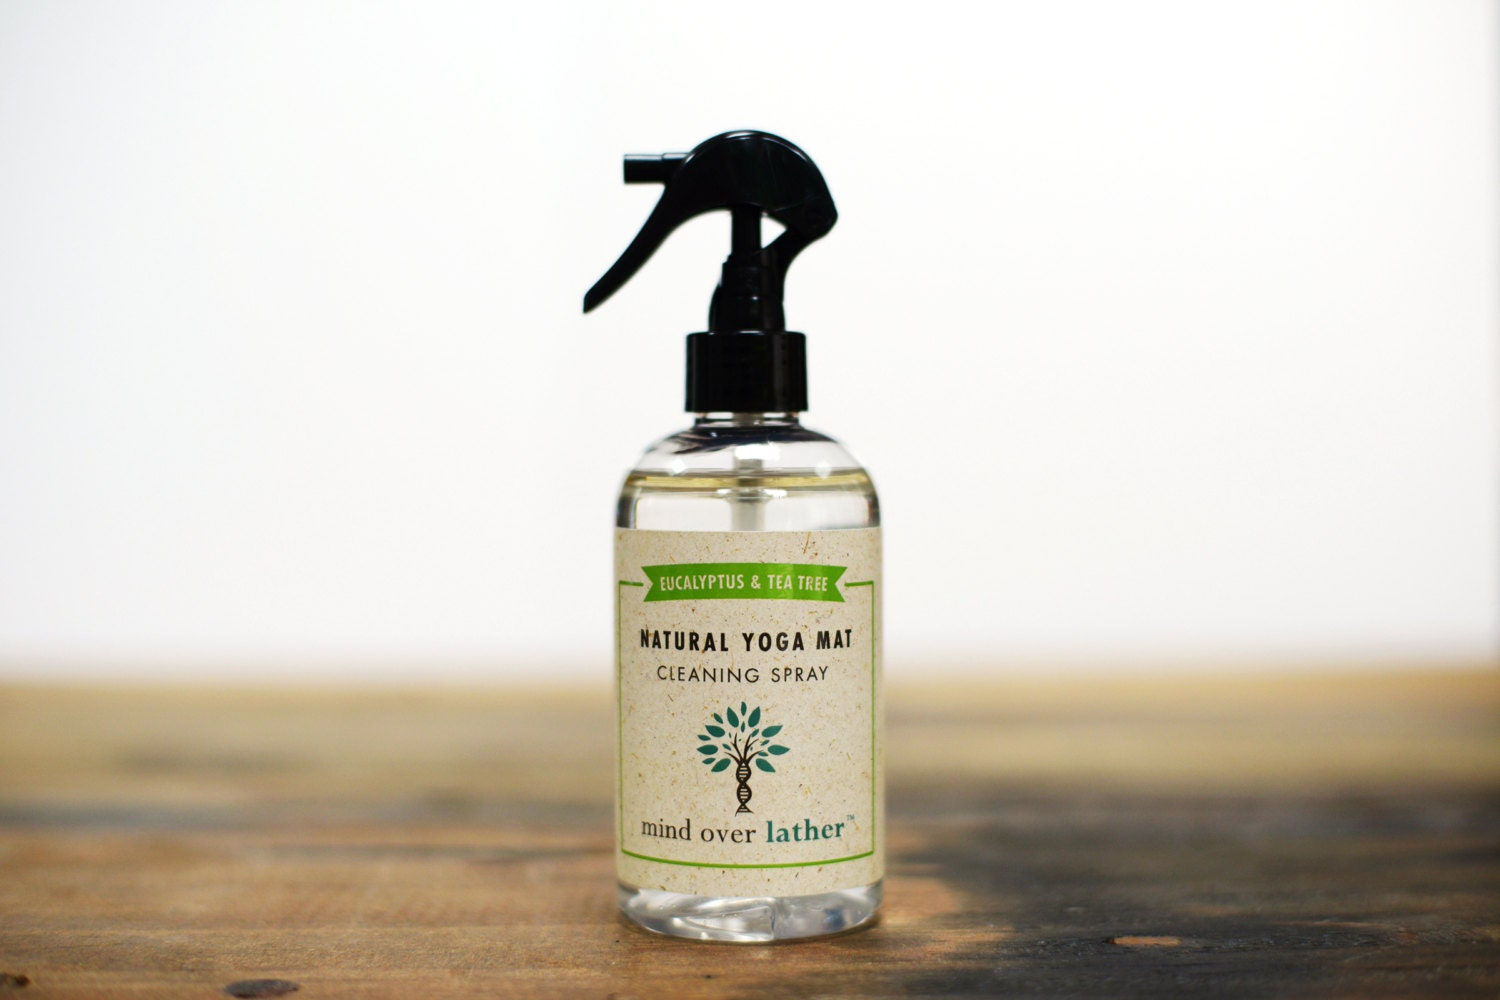 Eucalyptus Amp Tea Tree Natural Yoga Mat Spray Cleaner 8oz